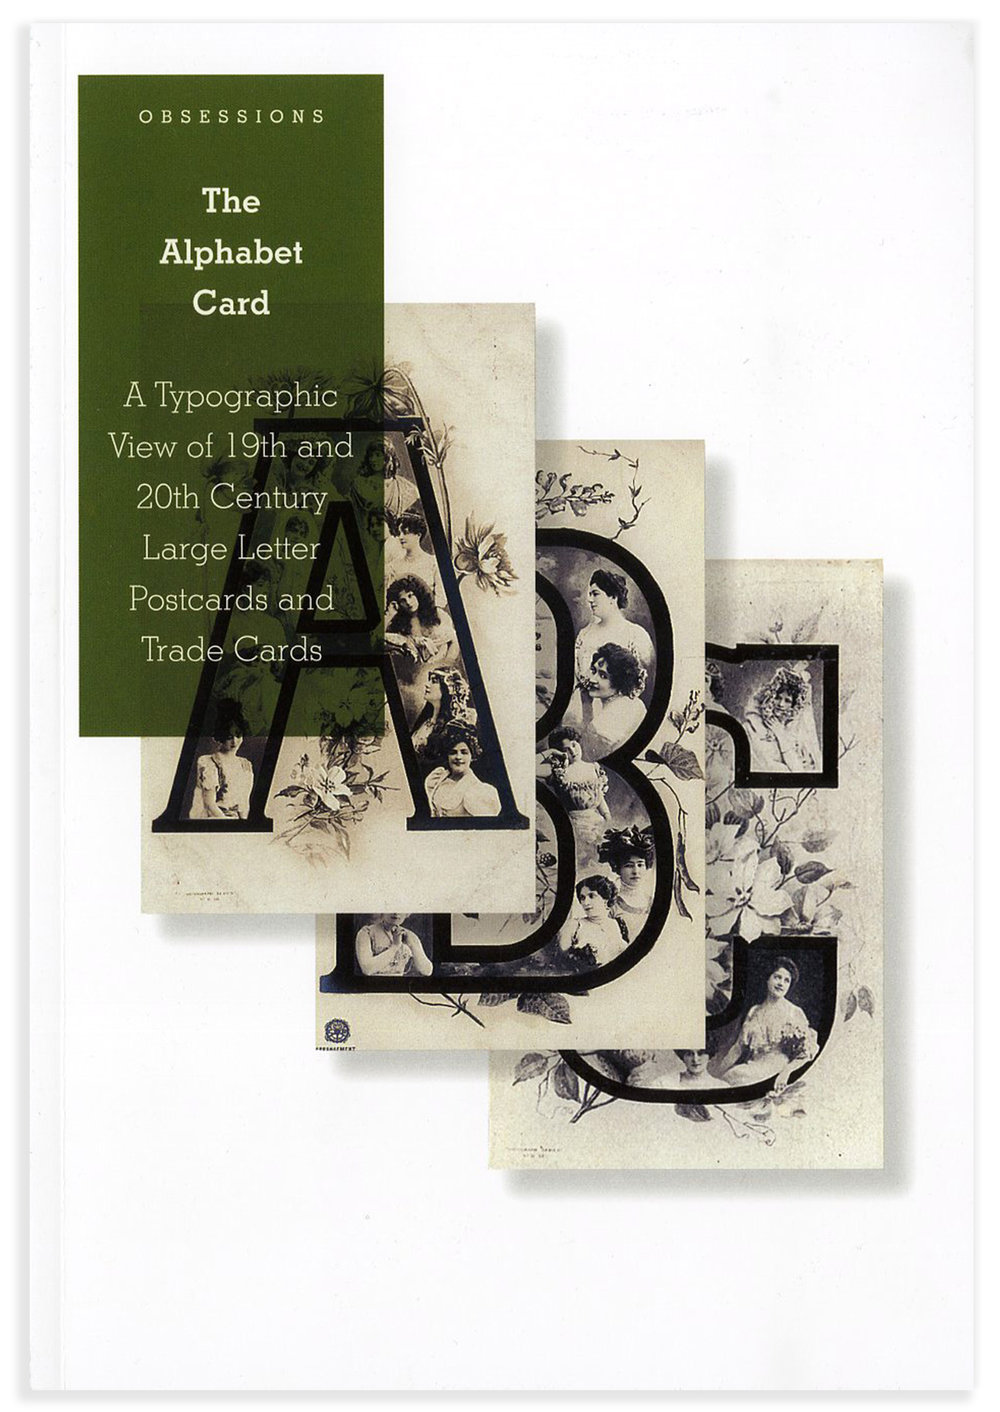 Obsessions No. 1: The Alphabet Card